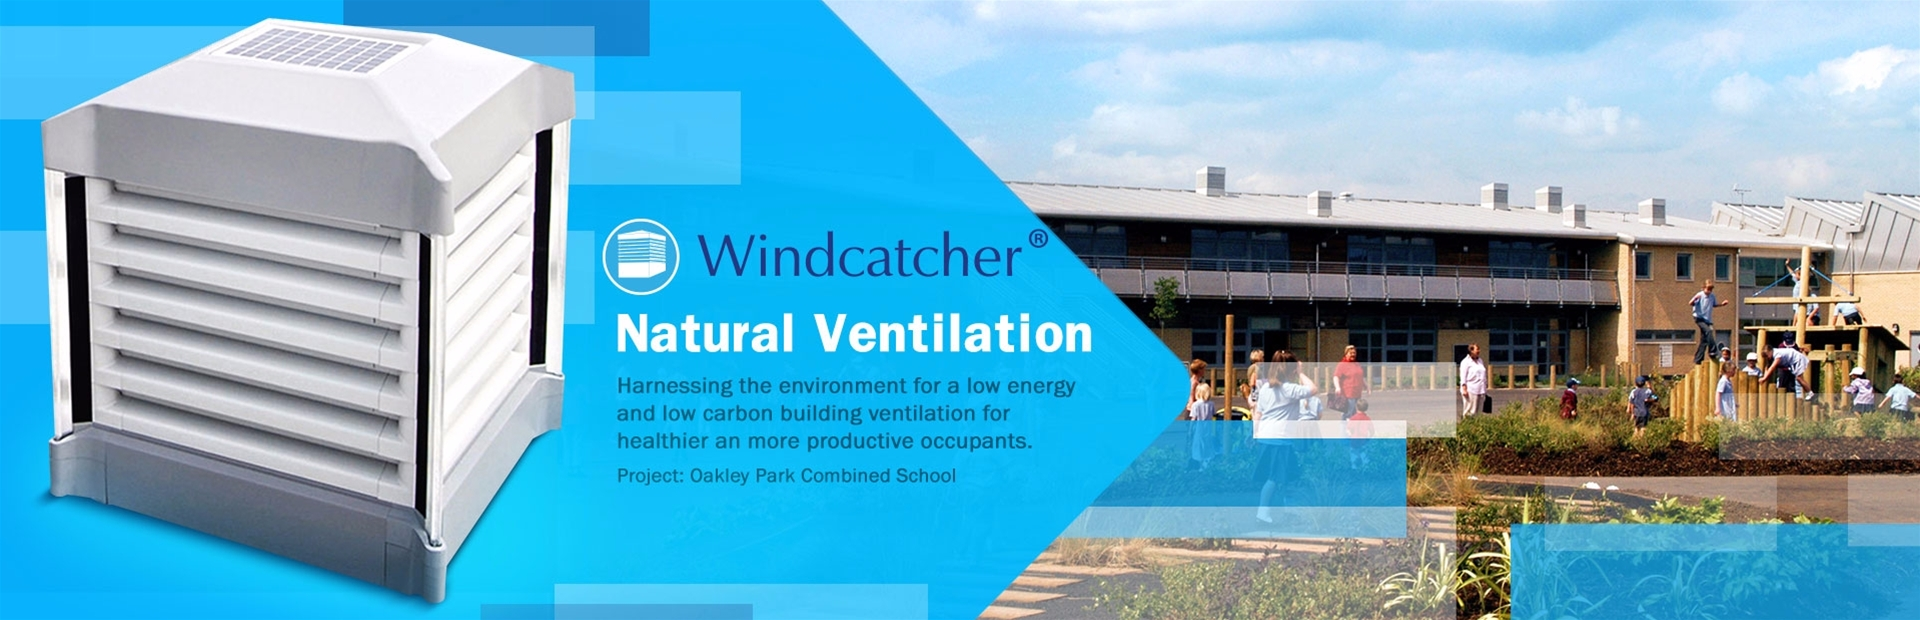 natural ventilation in buildings engineering essay It utilises an innovative combination of passive measures to maintain a natural ventilation and comfortable indoor climate of 21-23 degrees celsius in a city where summer temperatures can soar to 45 degrees.